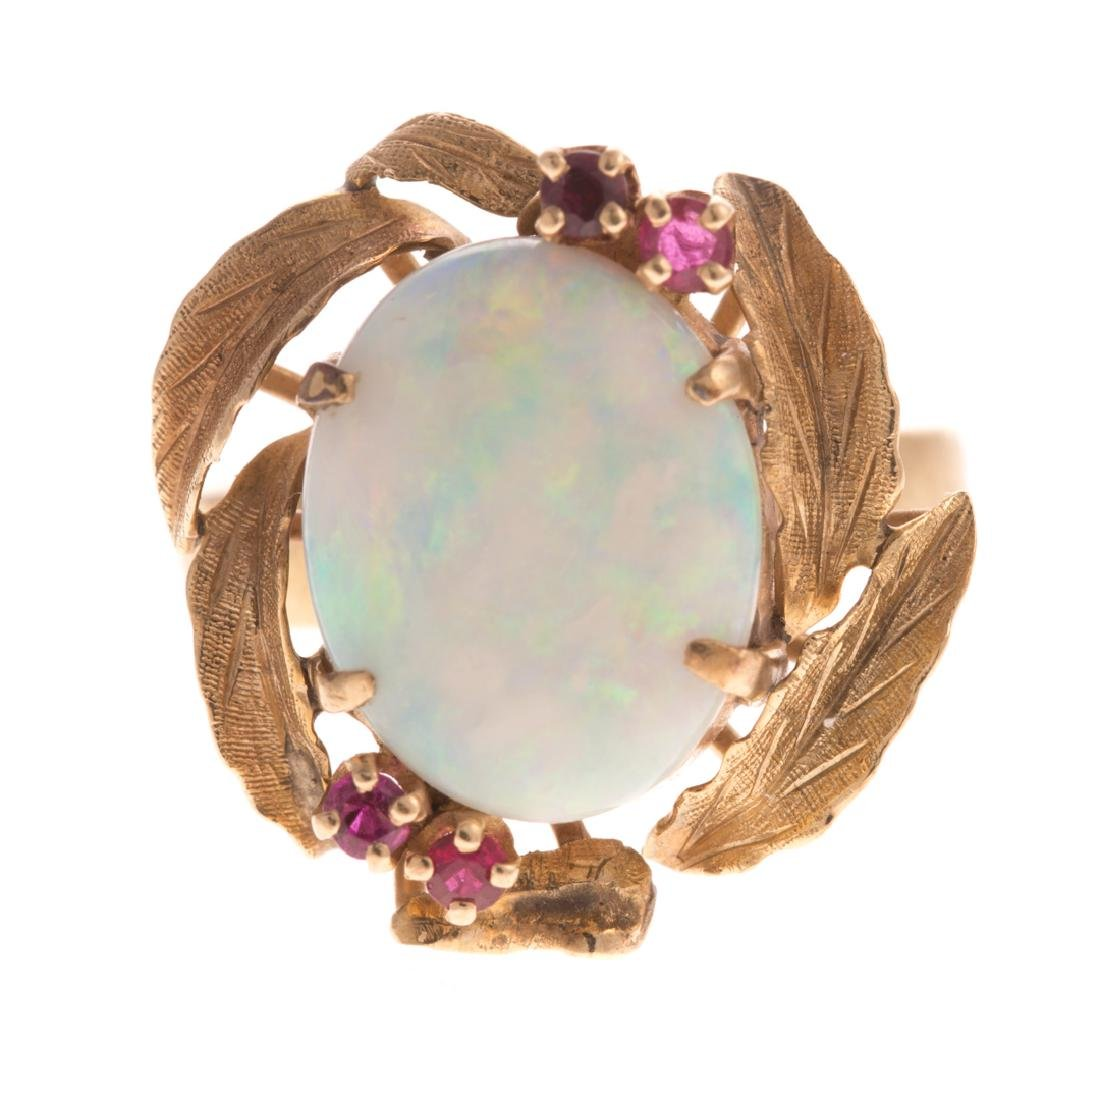 A Lady's 18K Opal & Ruby Cocktail Ring